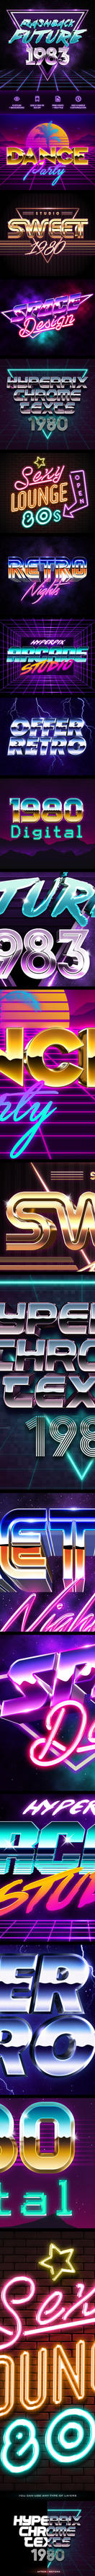 80's Style Text Generator by GraphicAssets